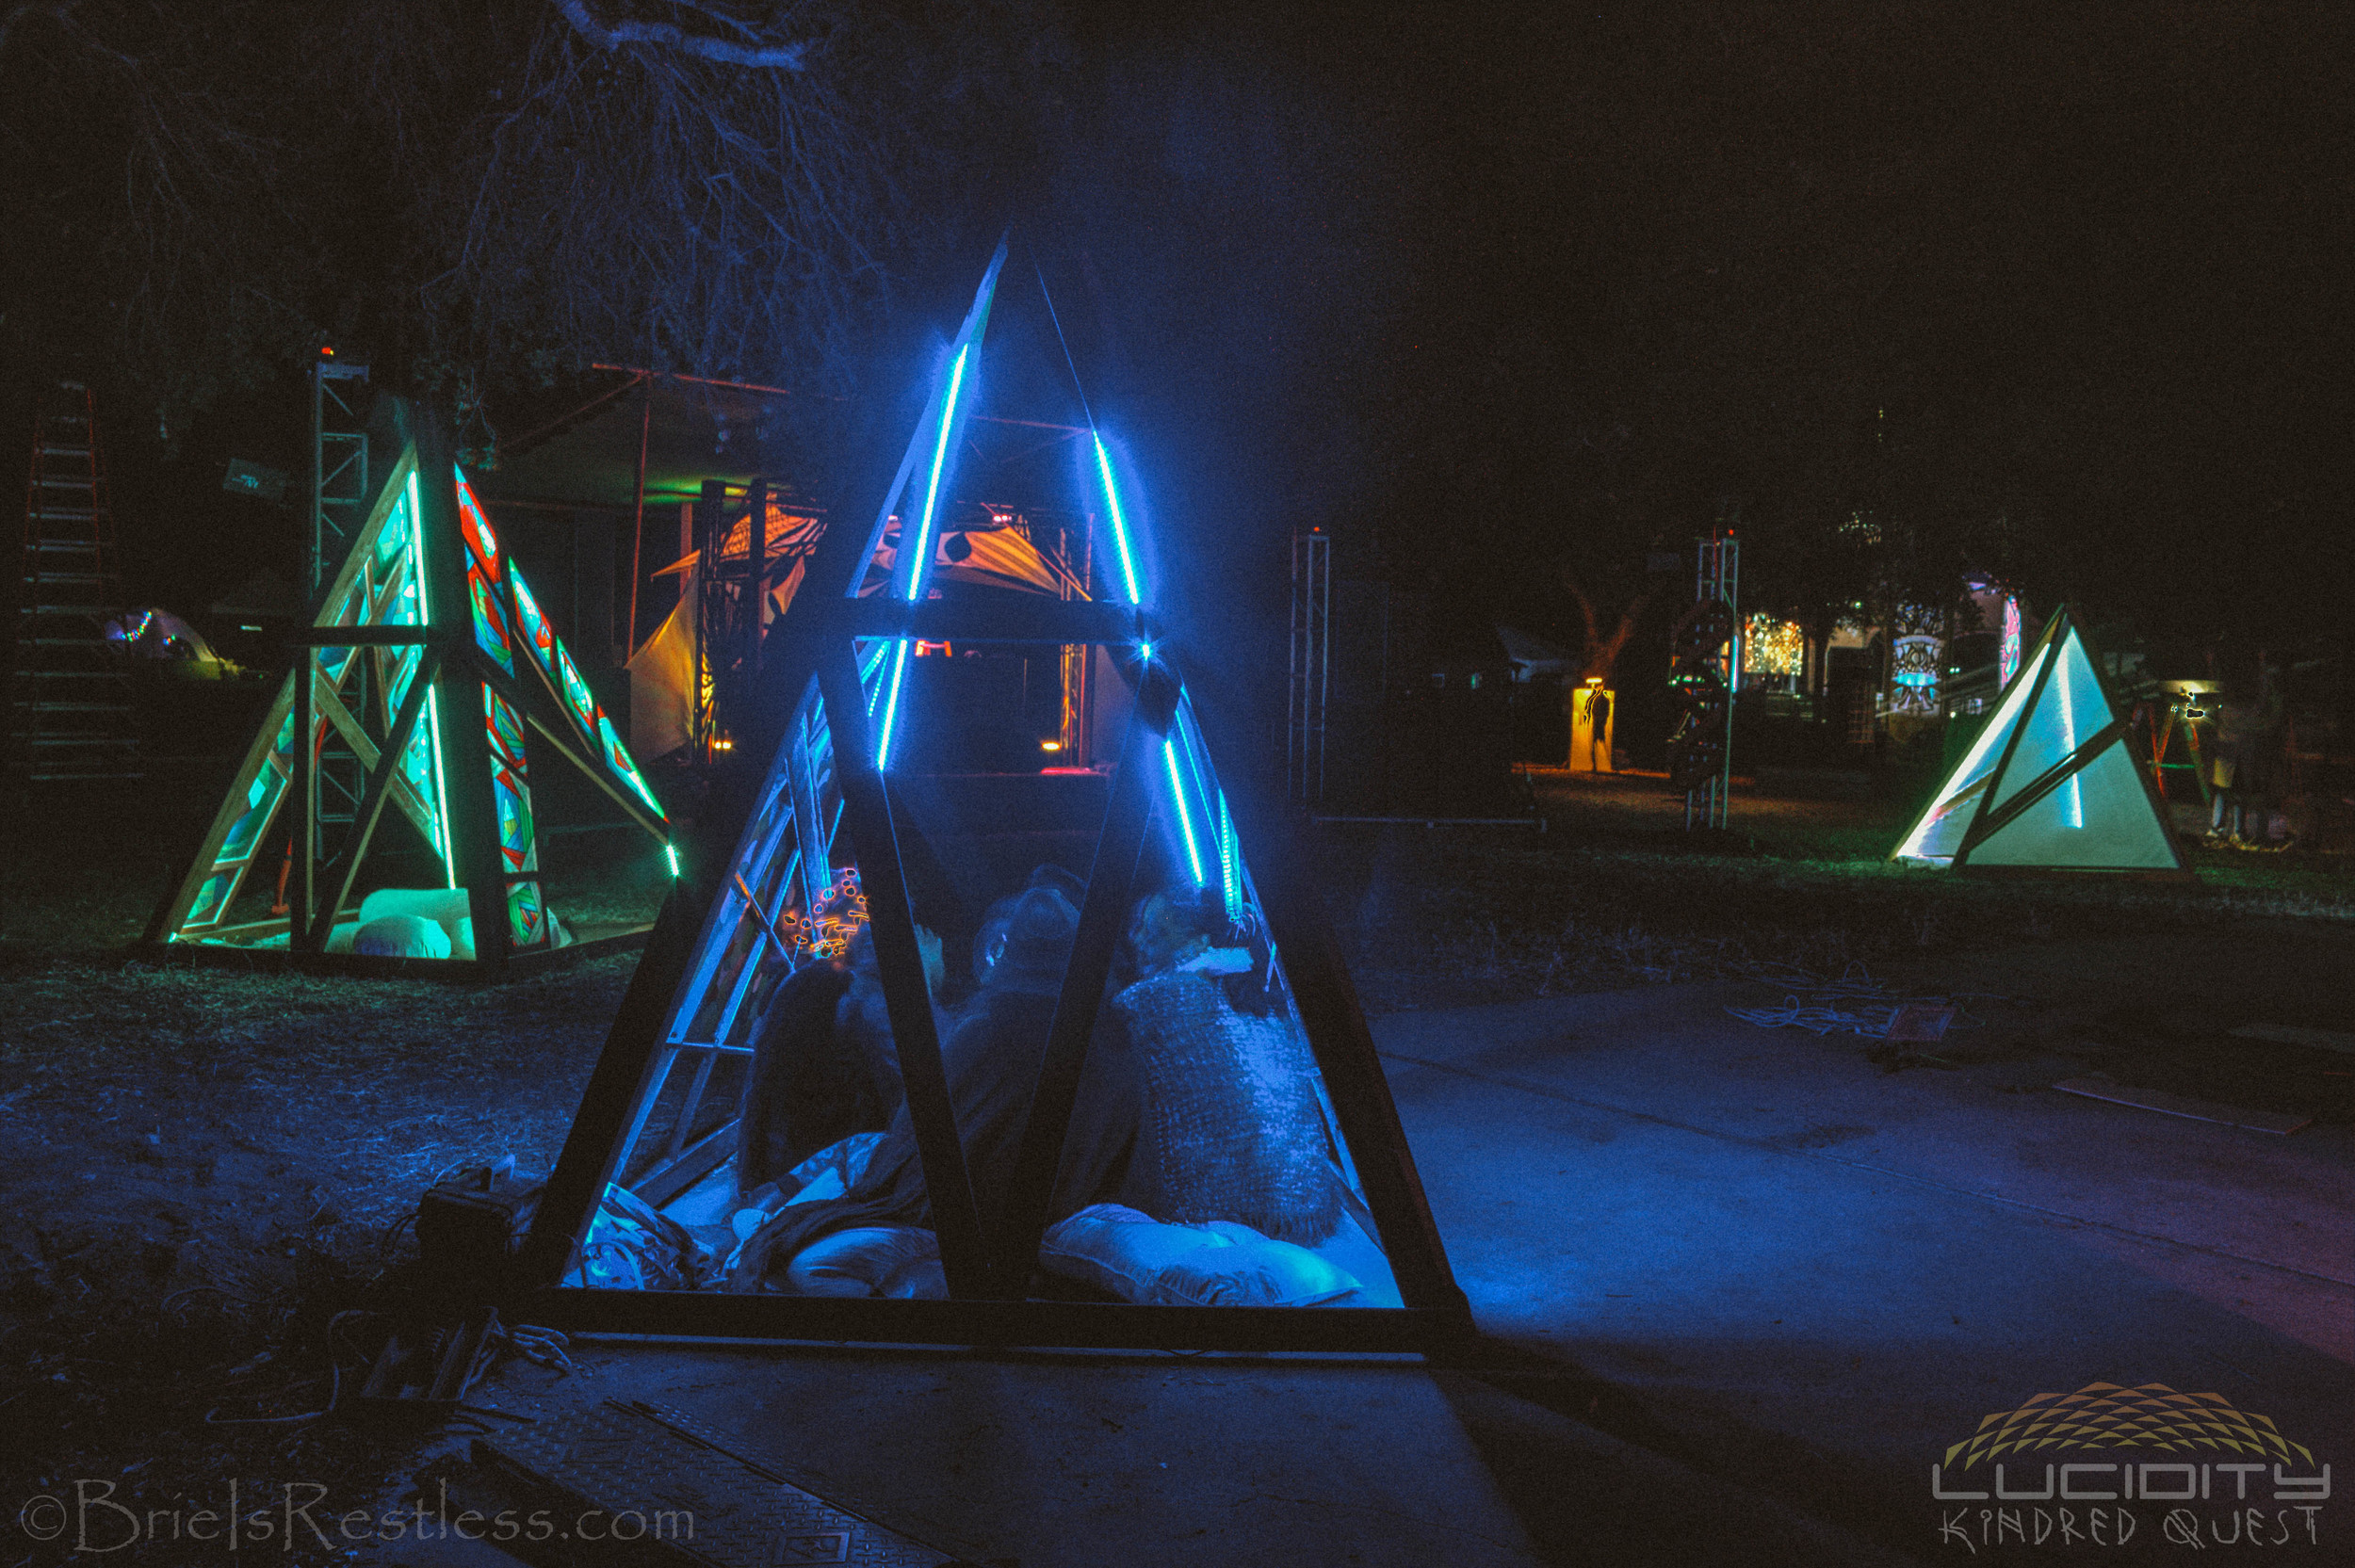 Goddess Grove - LED Lighting - Luciditiy - Kindred Quest - Build - April 2015 (1 of 1)-1.jpg